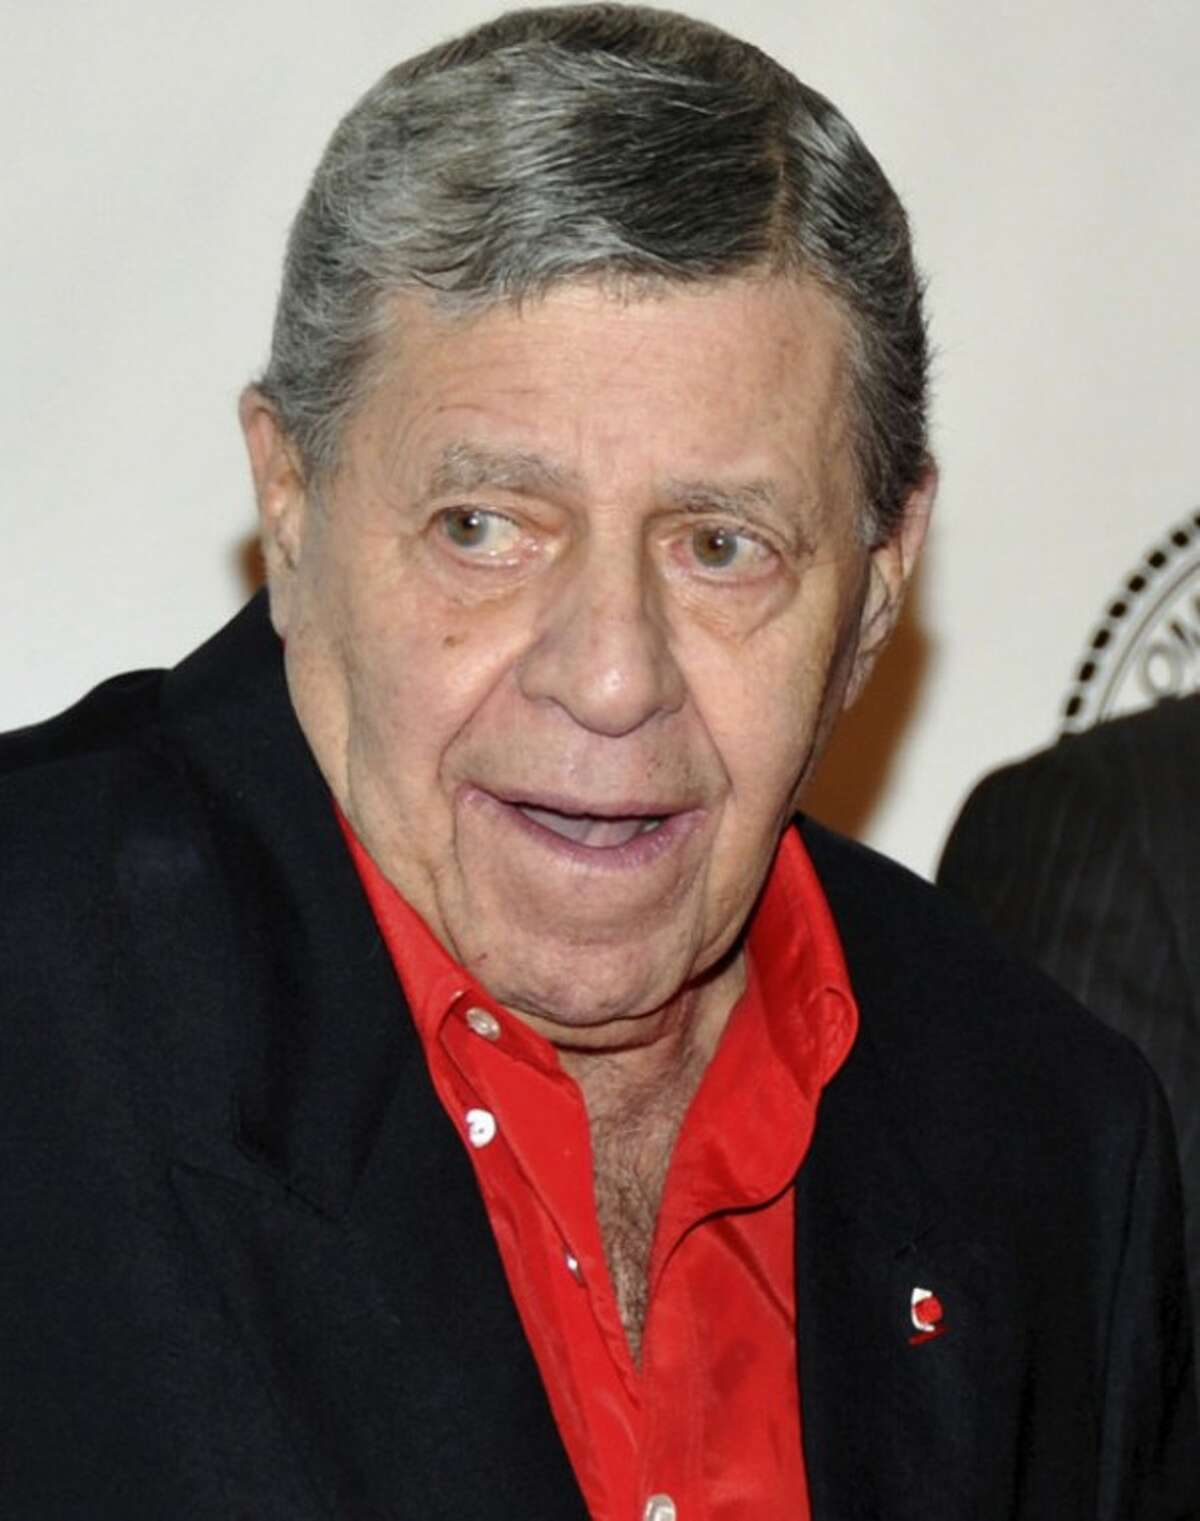 AP photo Jerry Lewis, show in this 2010 photo, and the Muscular Dystrophy Association aren't saying why they're fully parting ways after 45 years and raising more than $1 billion for the nonprofit through its annual telethon.